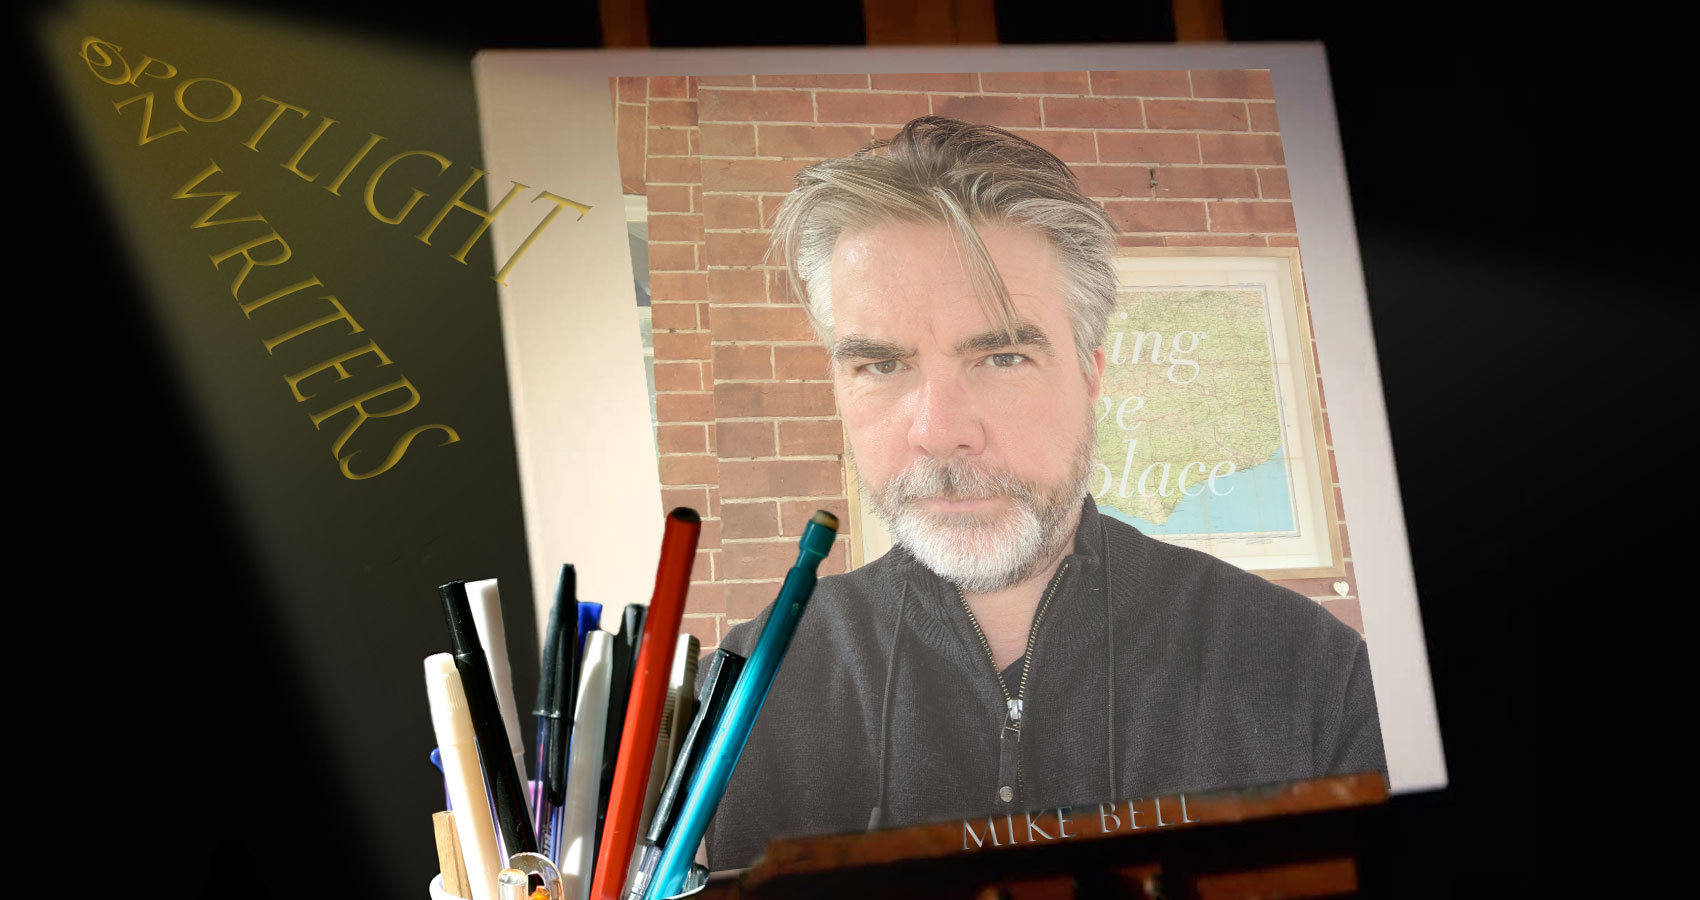 Spotlight On Writers - Mike Bell at Spillwords.com